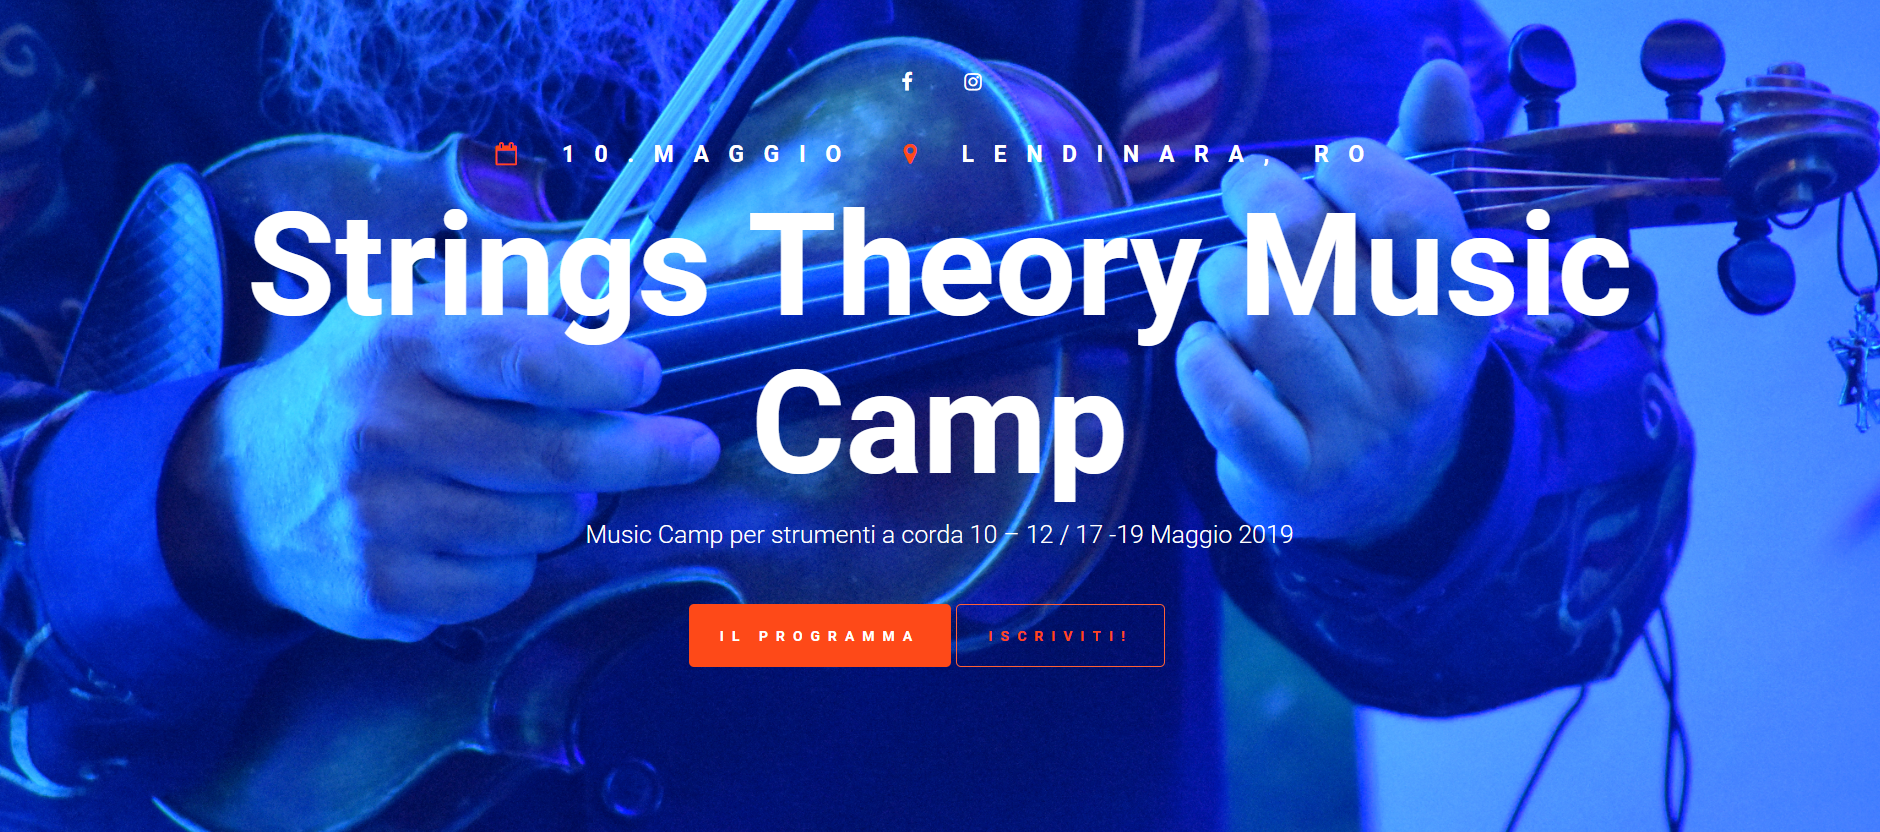 Strings Theory Music Camp